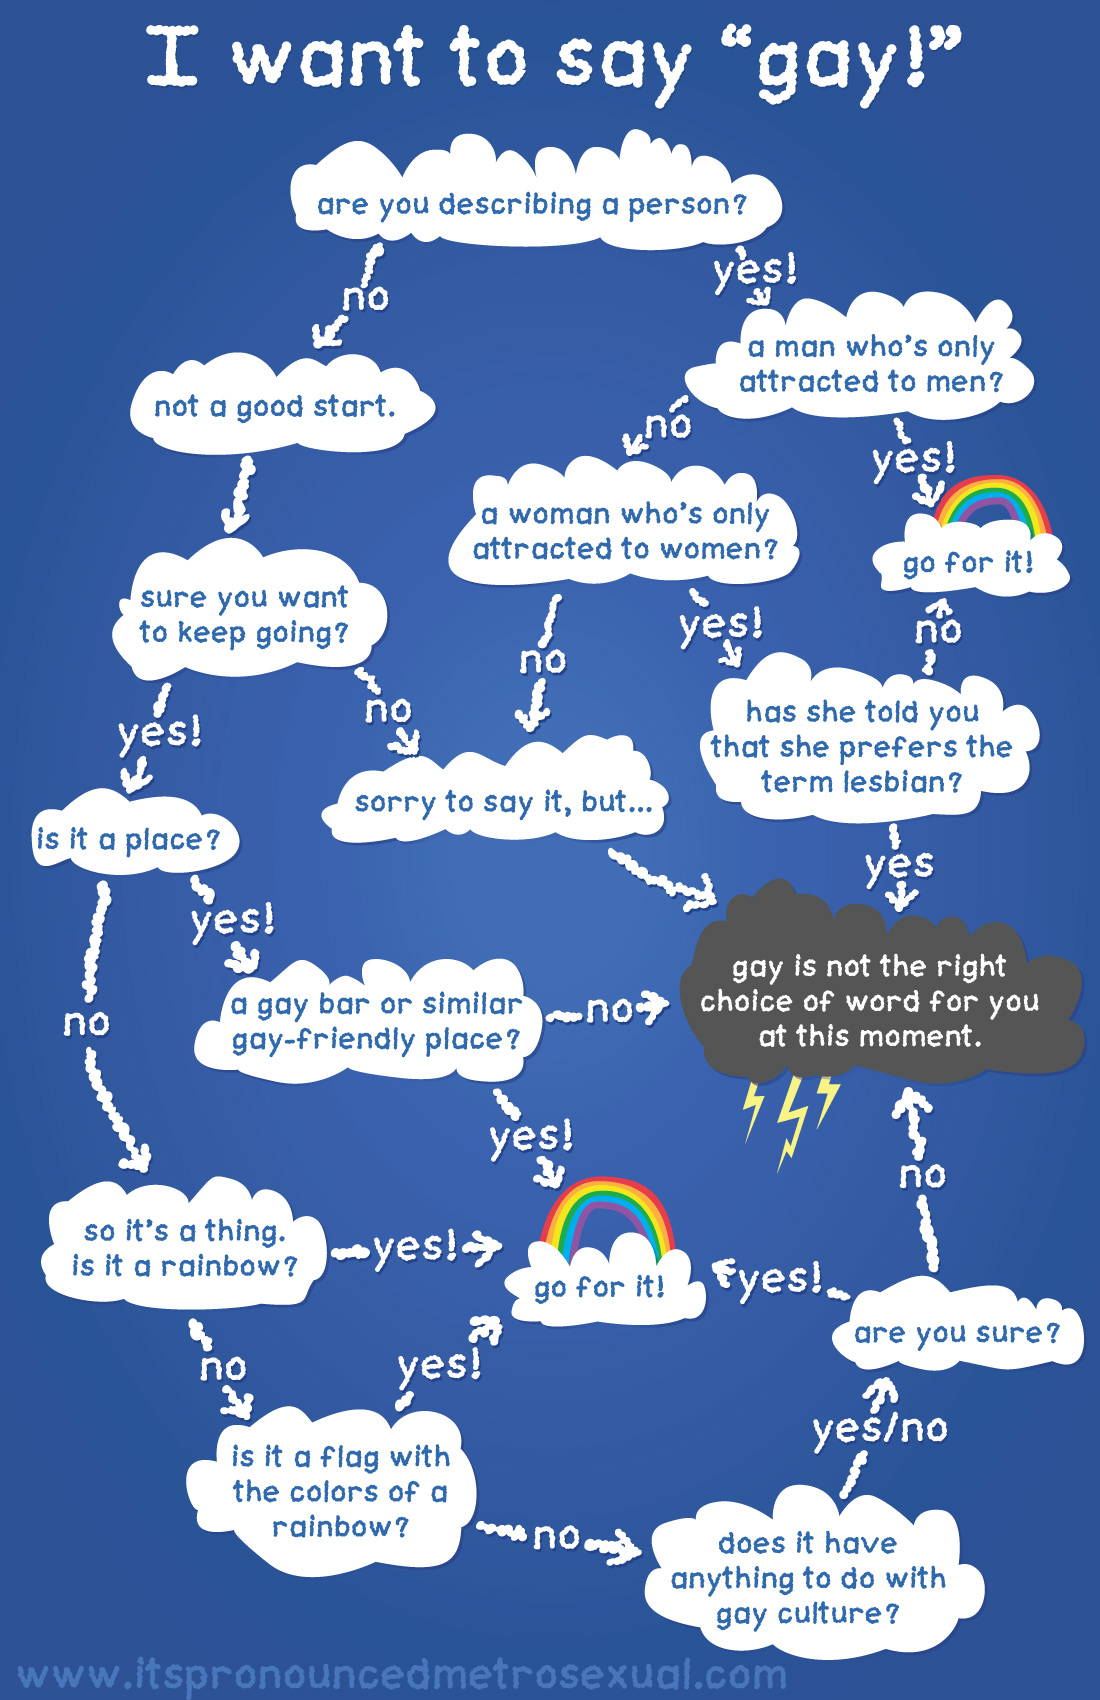 """I want to say gay"" Flowchart"